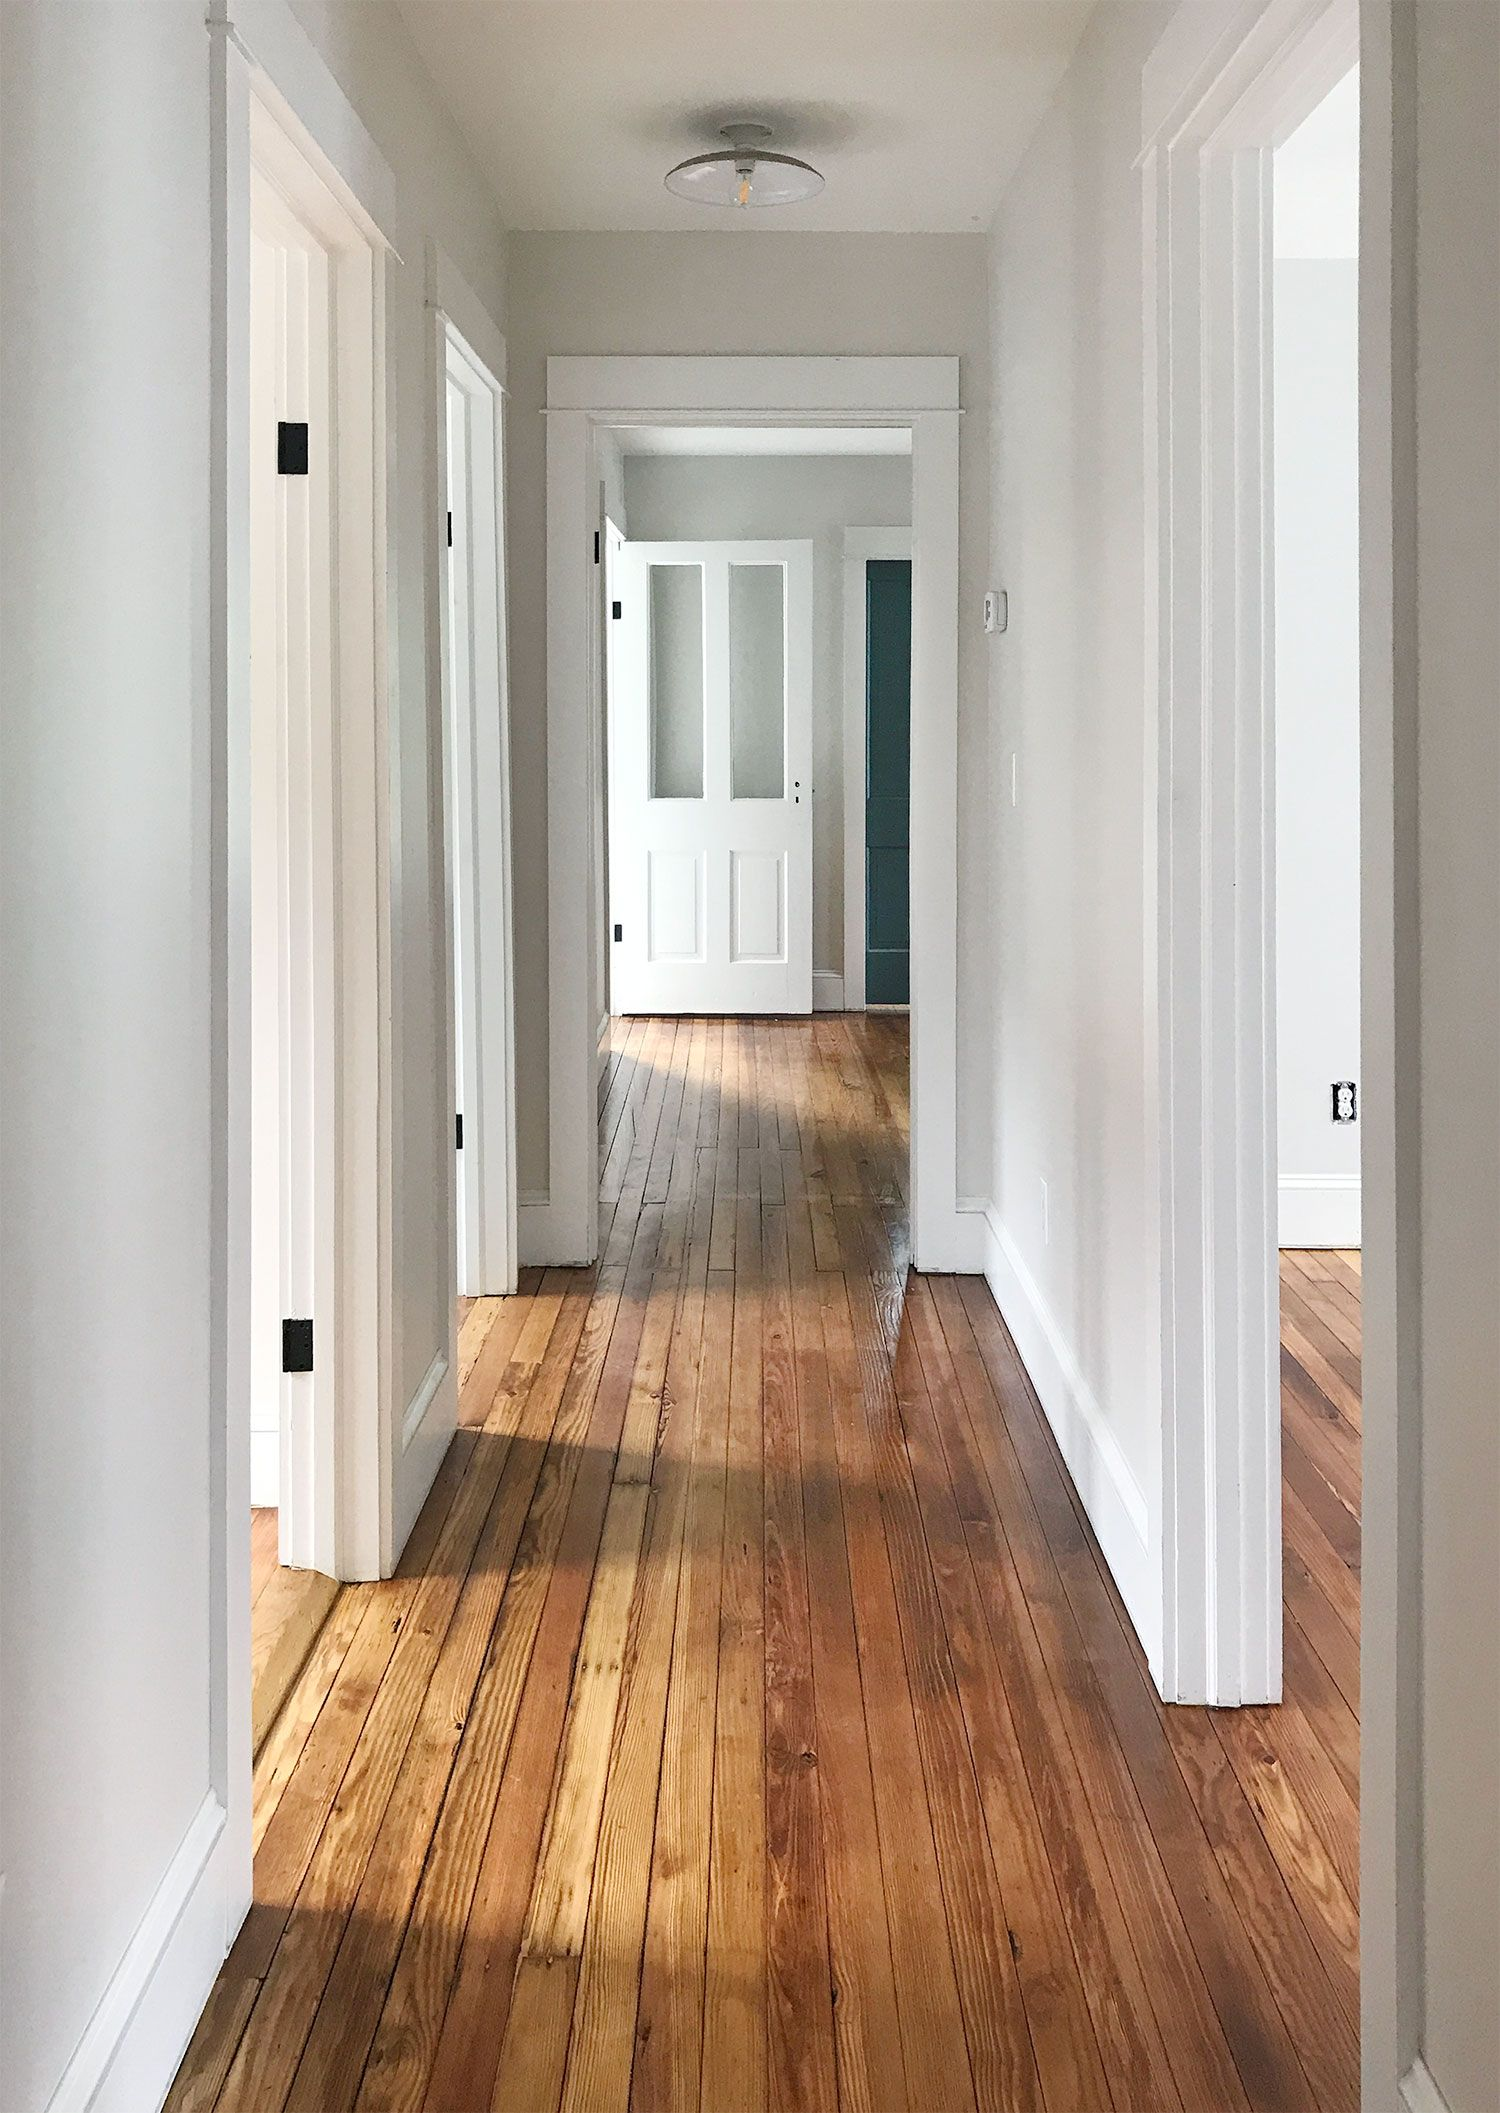 Is It Wrong To Have Different Wooden Flooring Upstairs From Downstairs Houzz Wood Floor Colors Hardwood Floor Colors Dark Wooden Floor